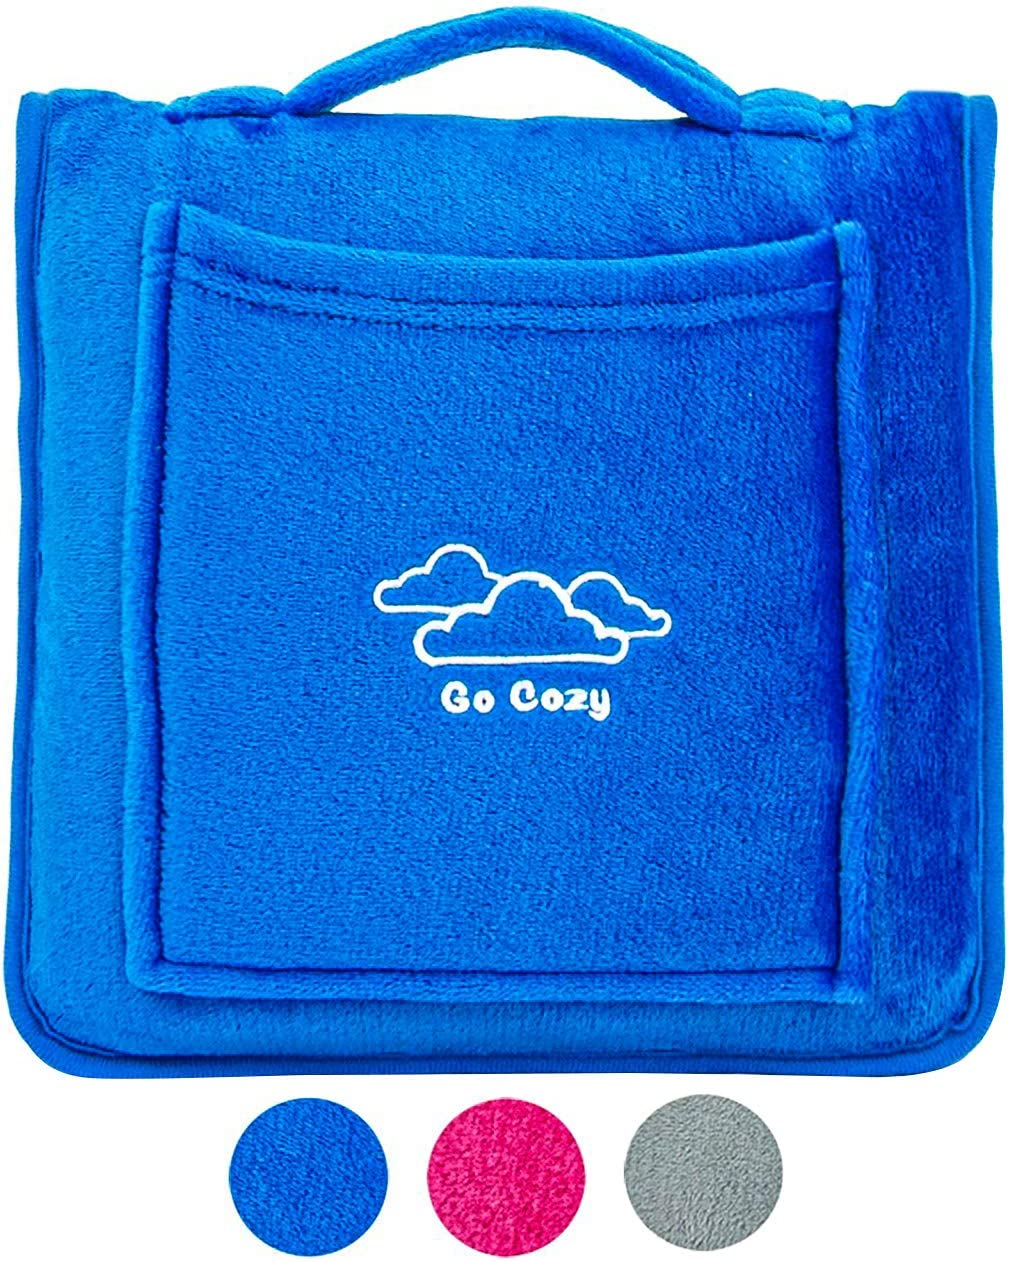 Go Cozy 4In1 Compact Travel Blanket. Soft Fleece Travel Blanket Airplane Compact. Portable Blanket with Front Pocket, Luggage Strap, and Carrying Handle. Great Travel Gift. Airplane Blanket (Blue).